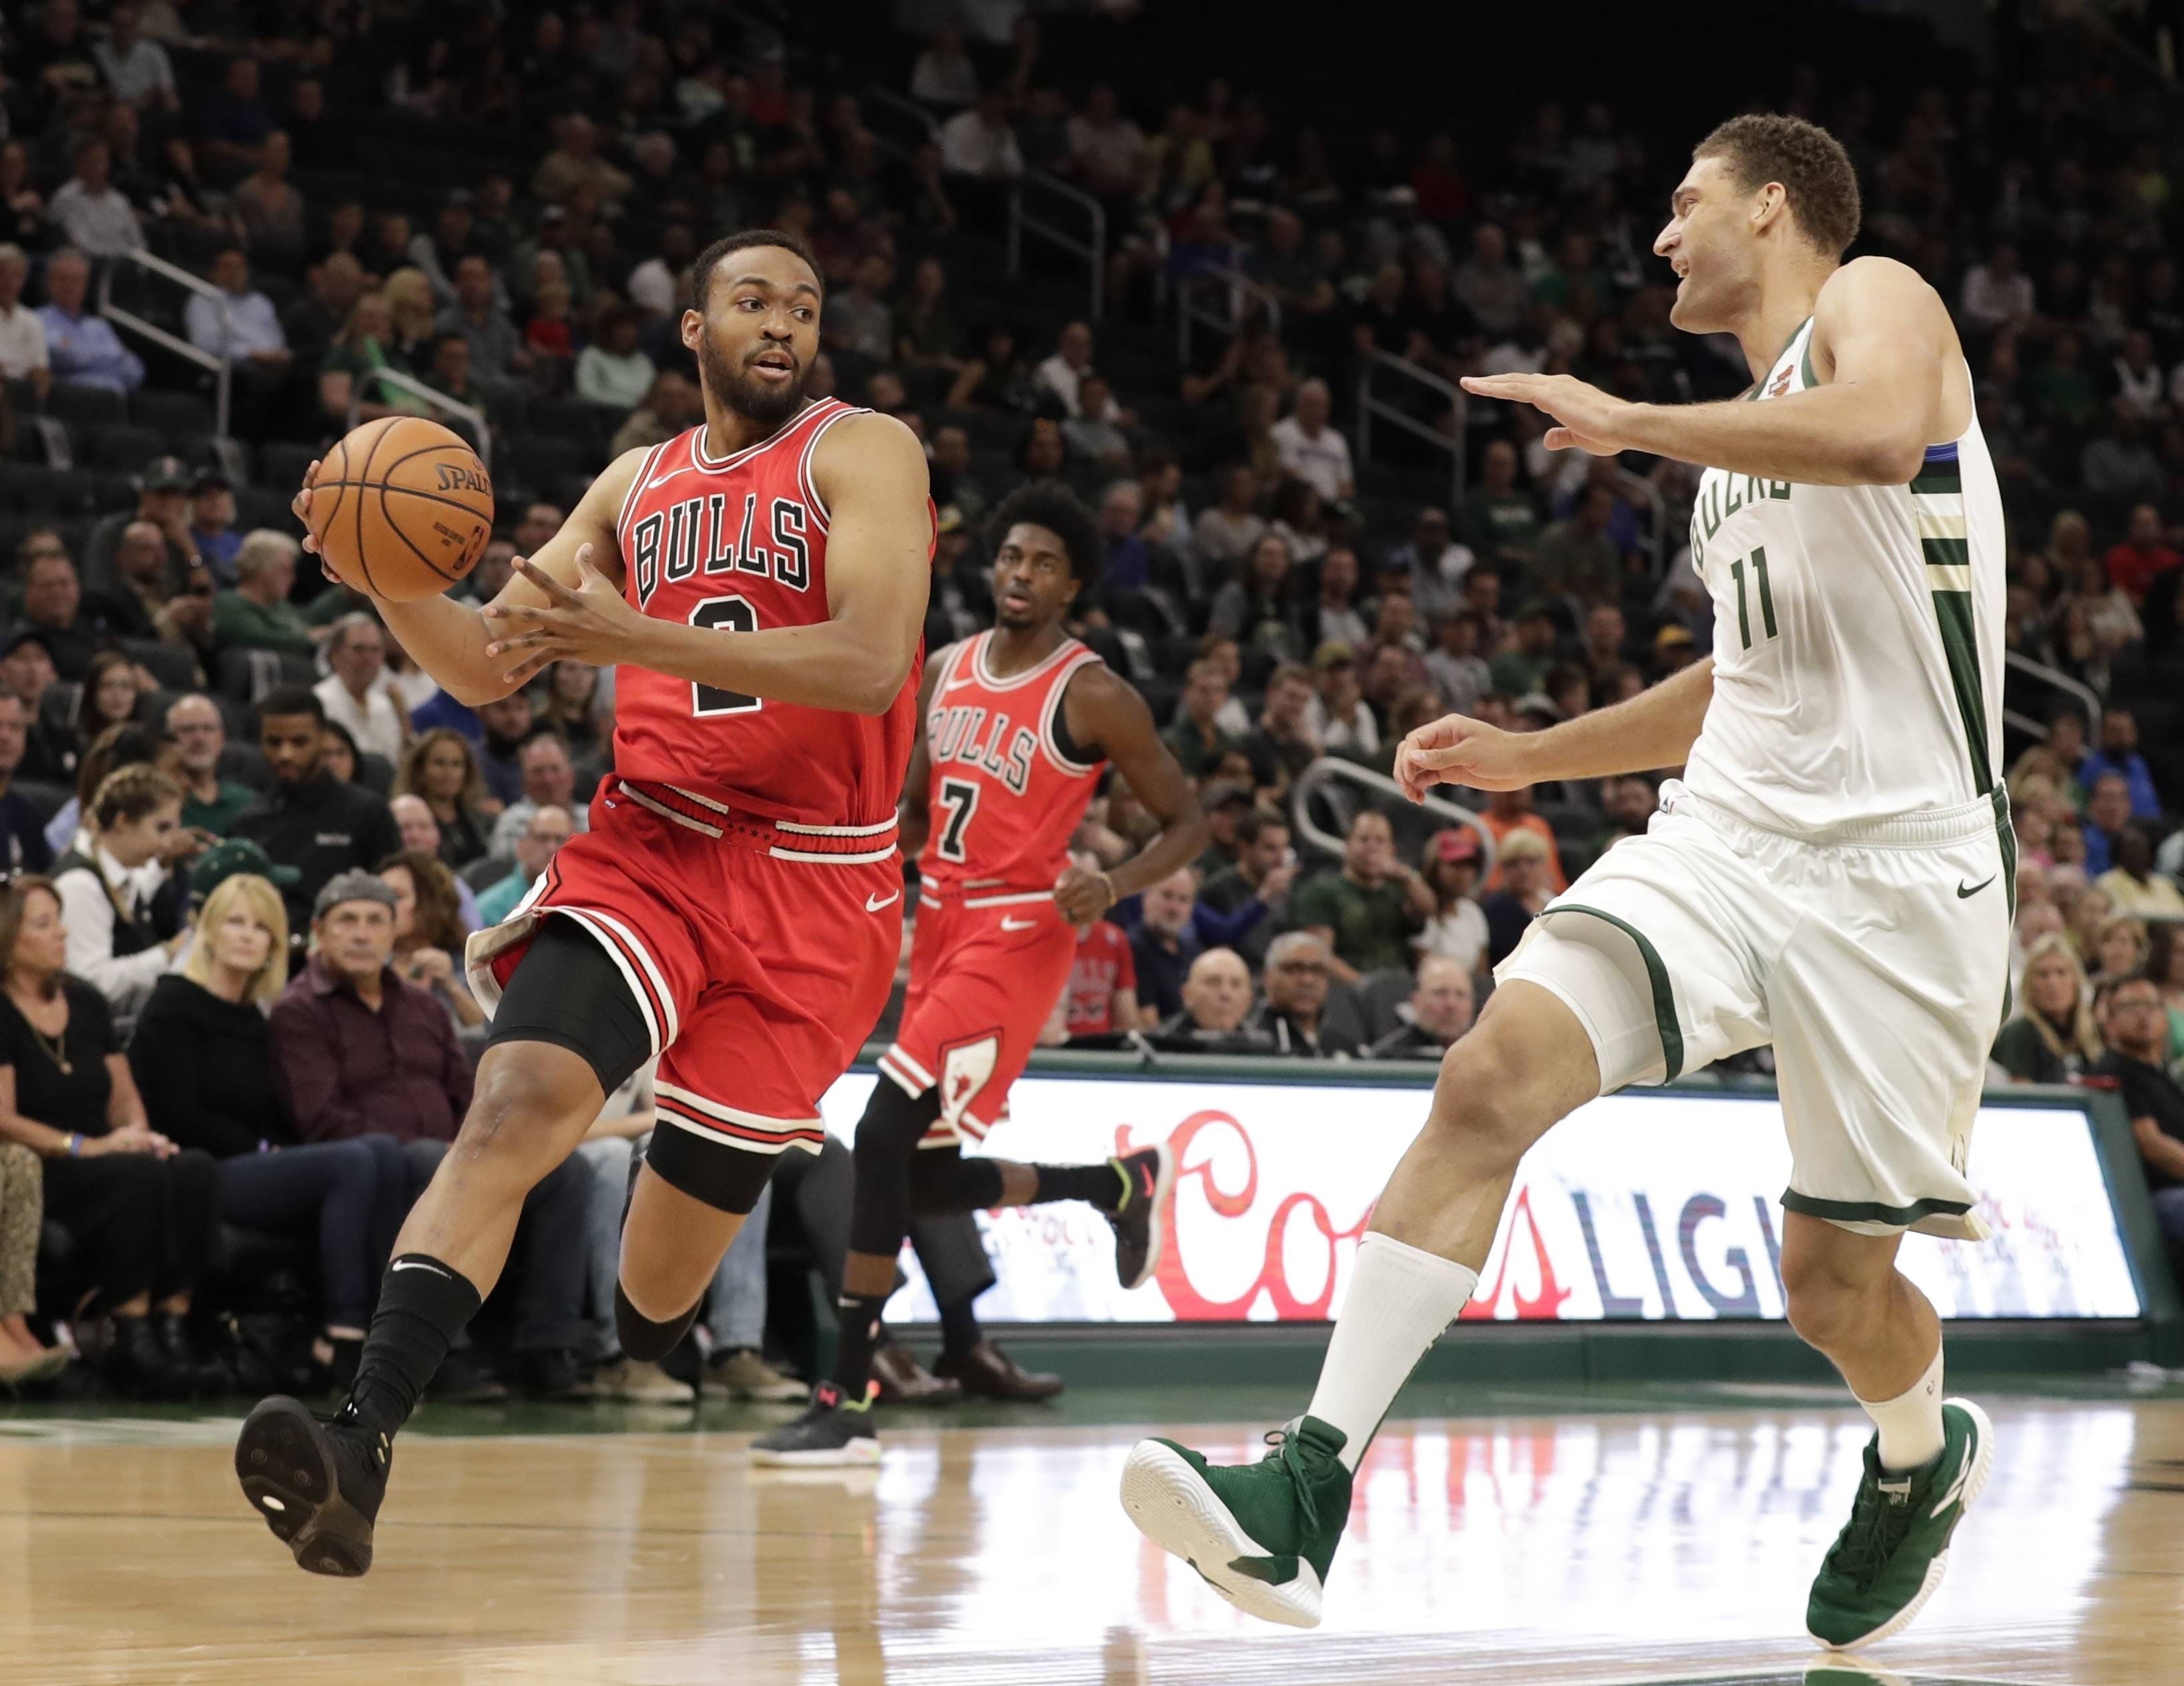 Parker's fit with Chicago Bulls remains puzzling